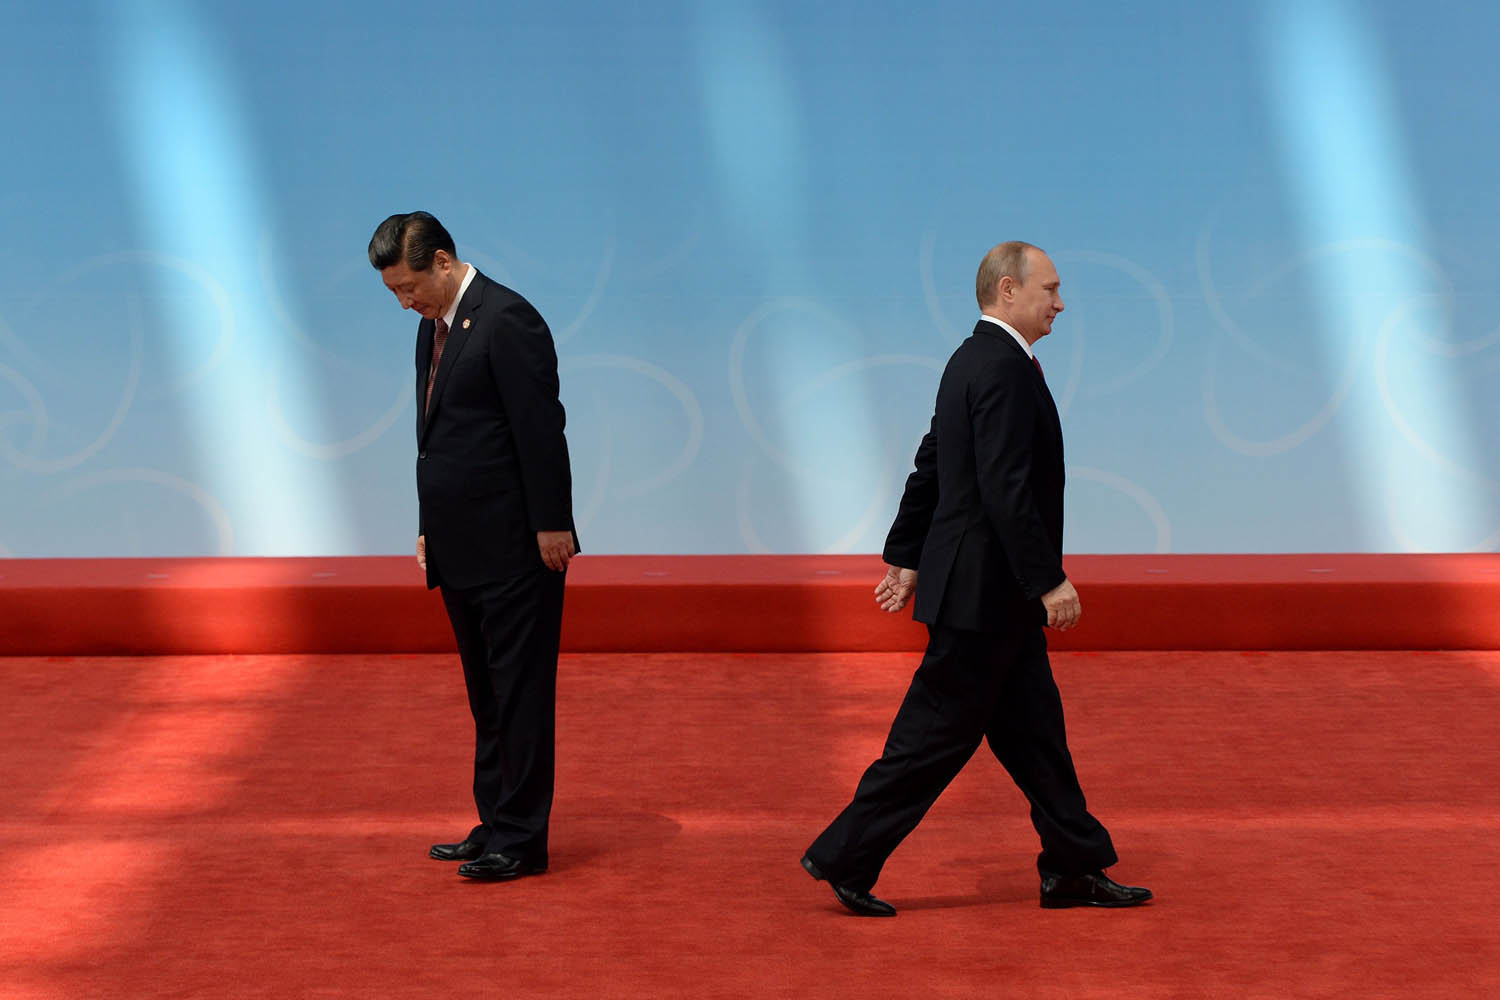 May 21, 2014.                               Russian President Vladimir Putin (R) leaves after being greeted by Chinese President Xi Jinping before the opening ceremony at the Expo Center at the fourth Conference on Interaction and Confidence Building Measures in Asia (CICA) summit in Shanghai.